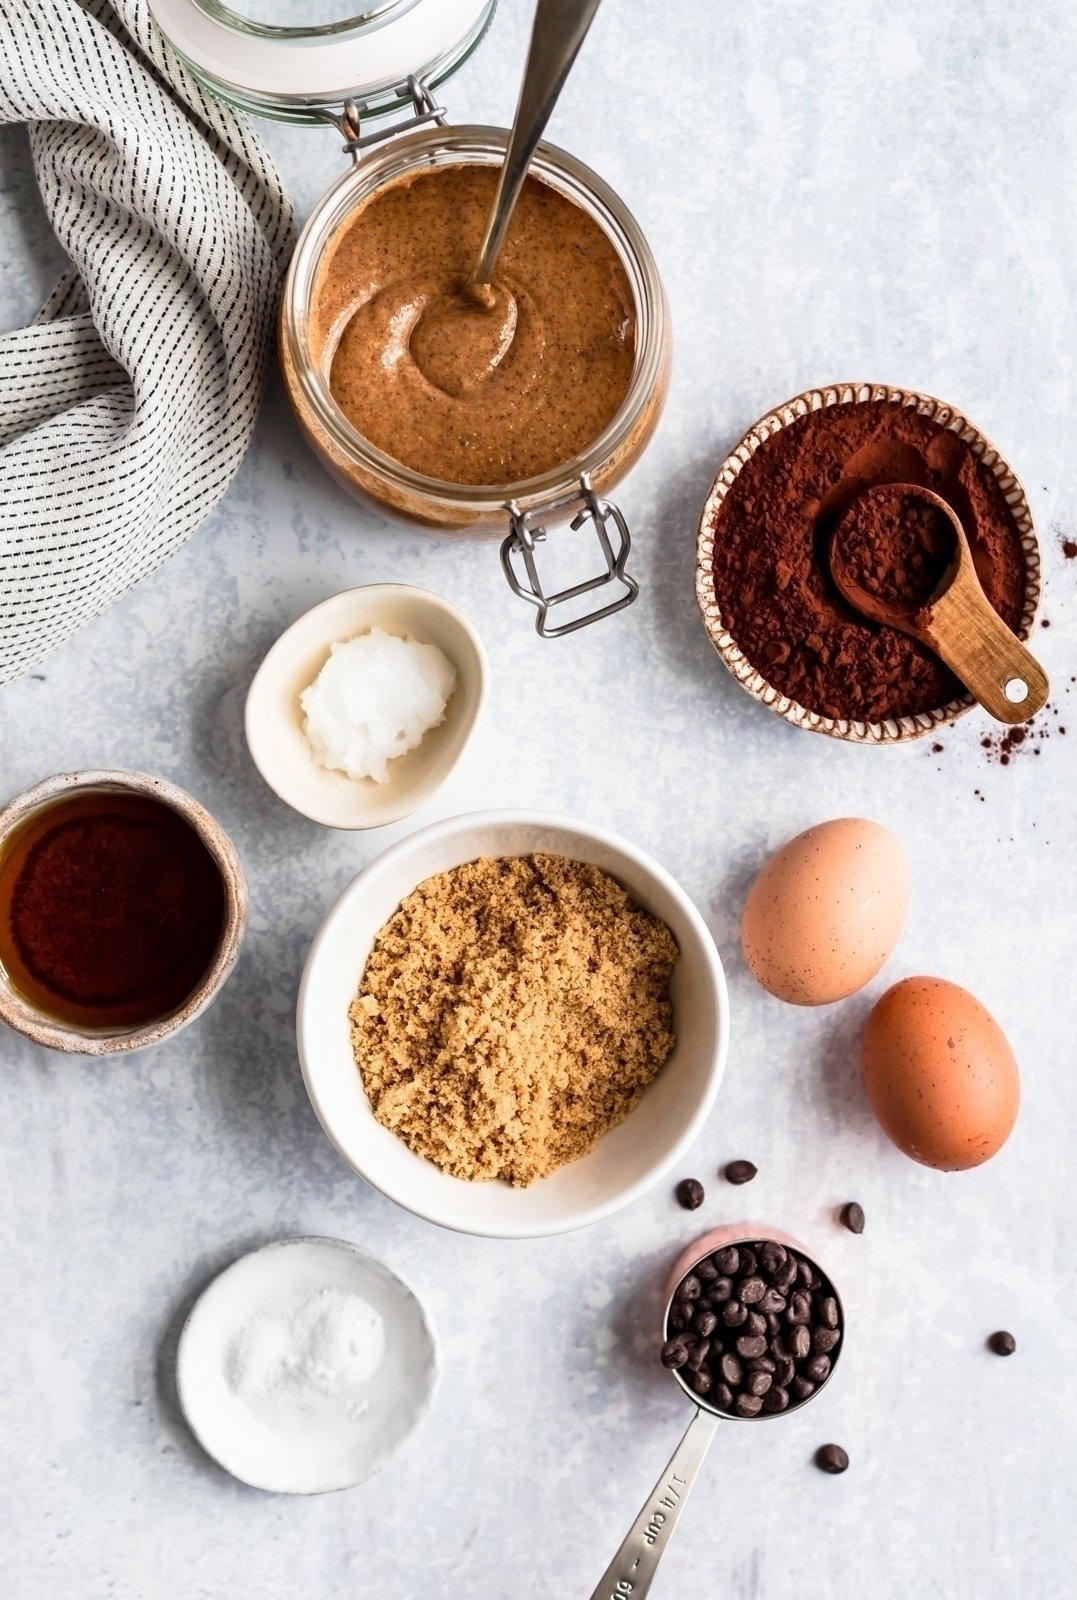 ingredients for almond butter brownies on a surface